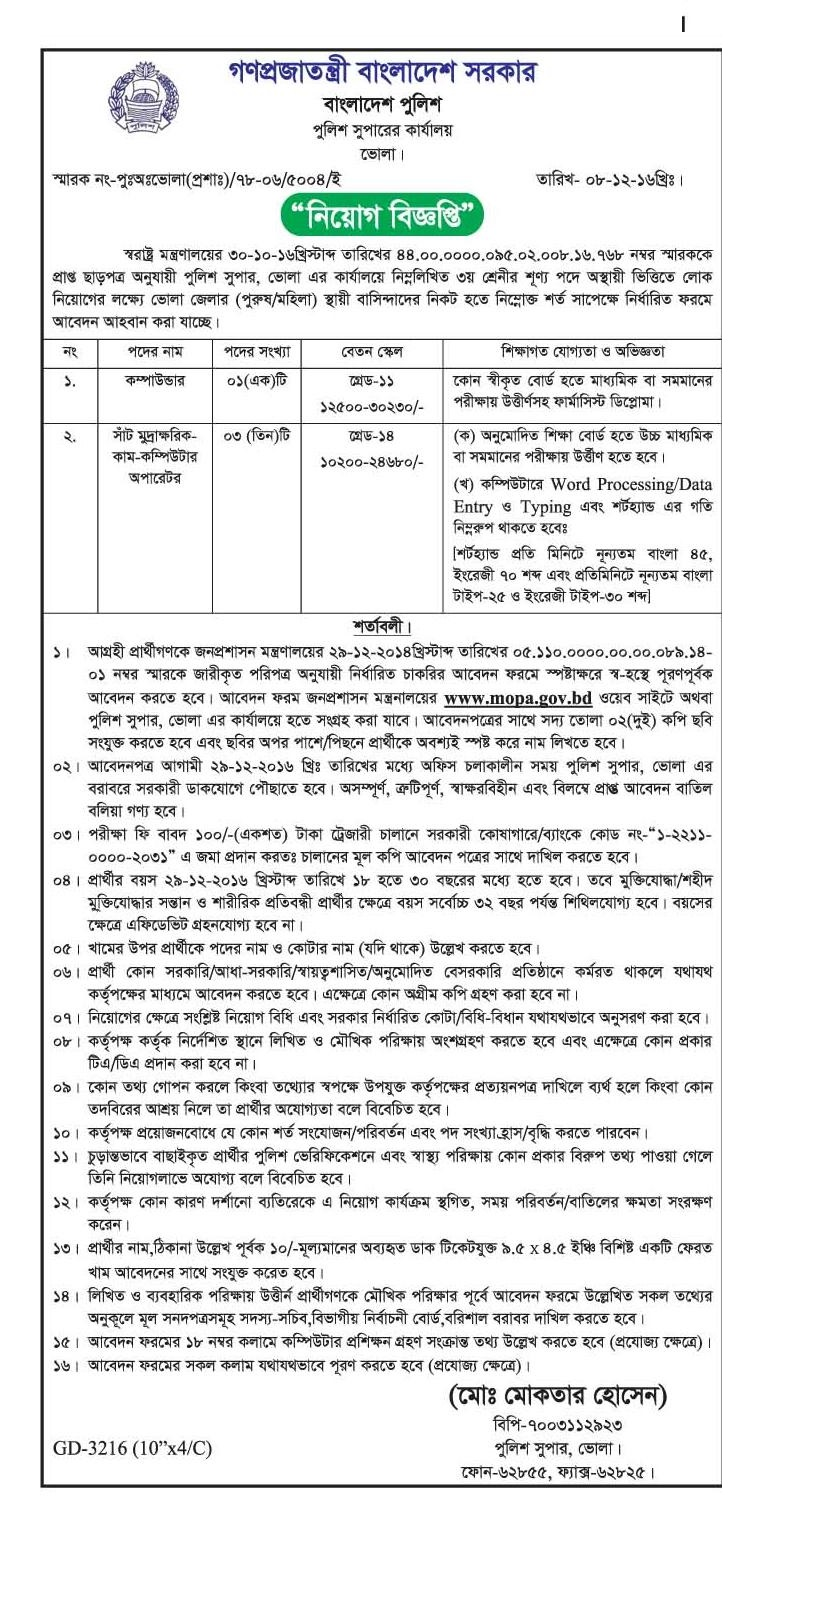 Bangladesh Police Job Circular December 2016.